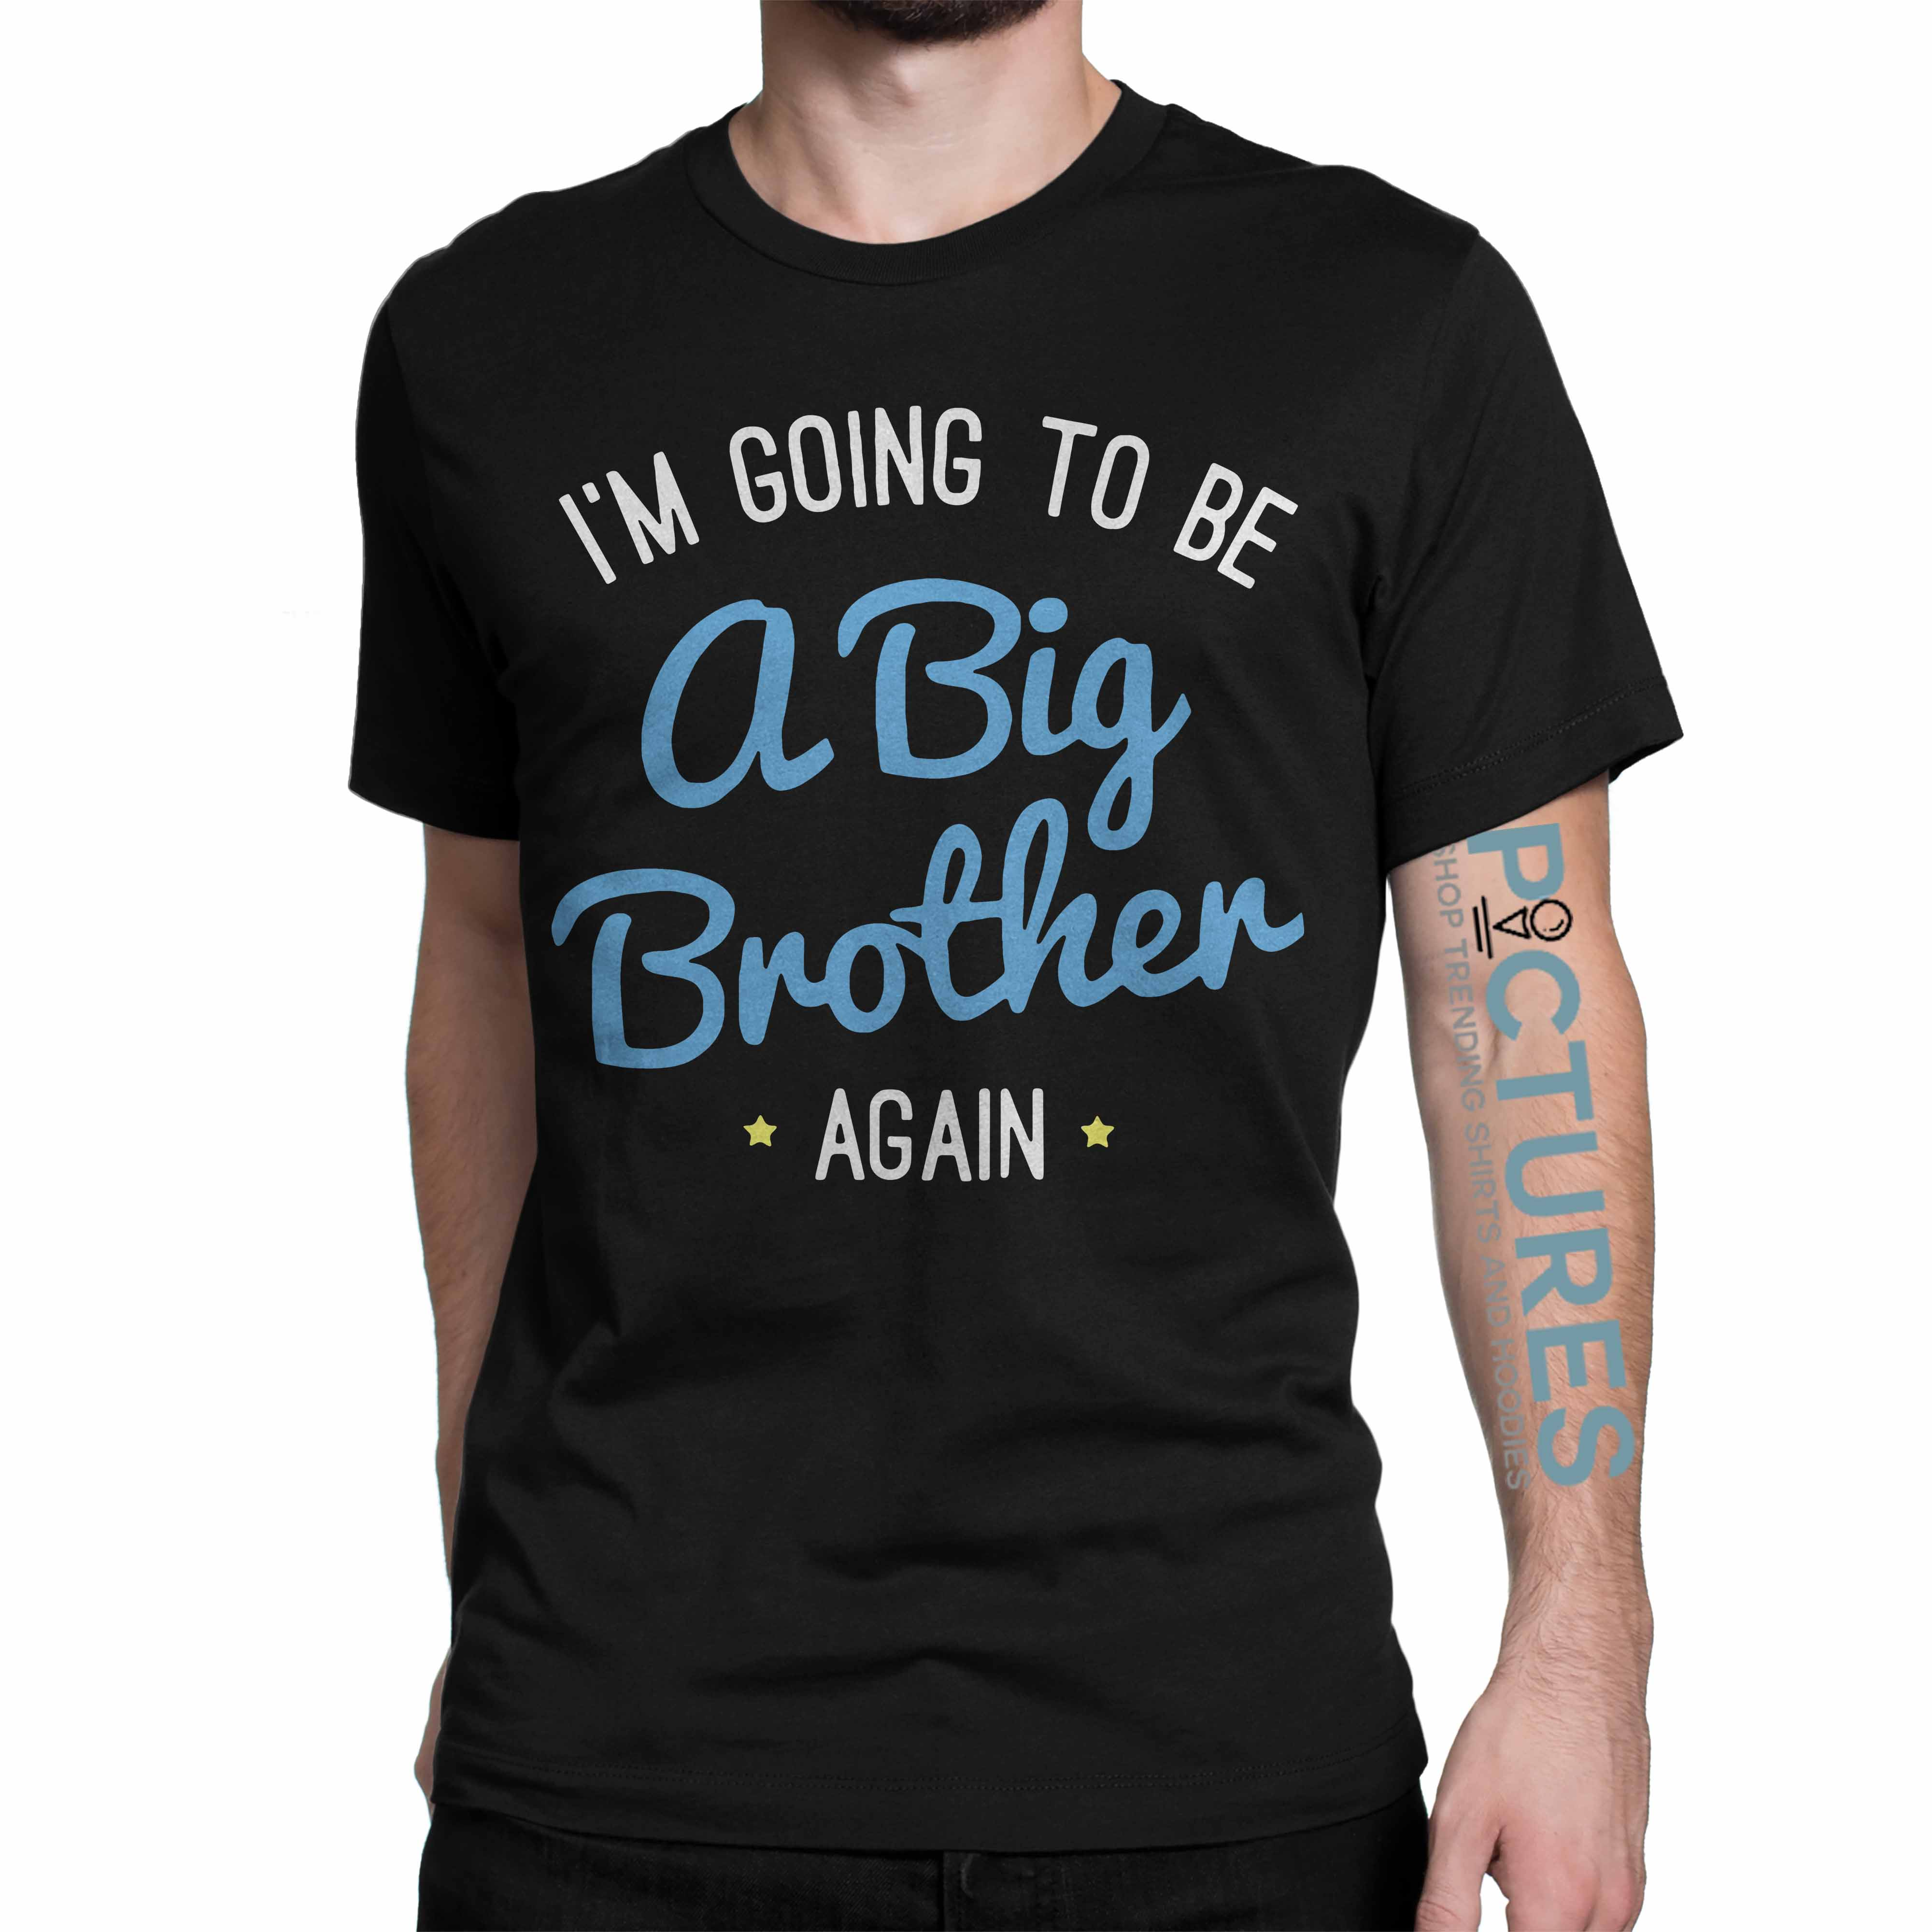 I'm going to be a big brother again shirt